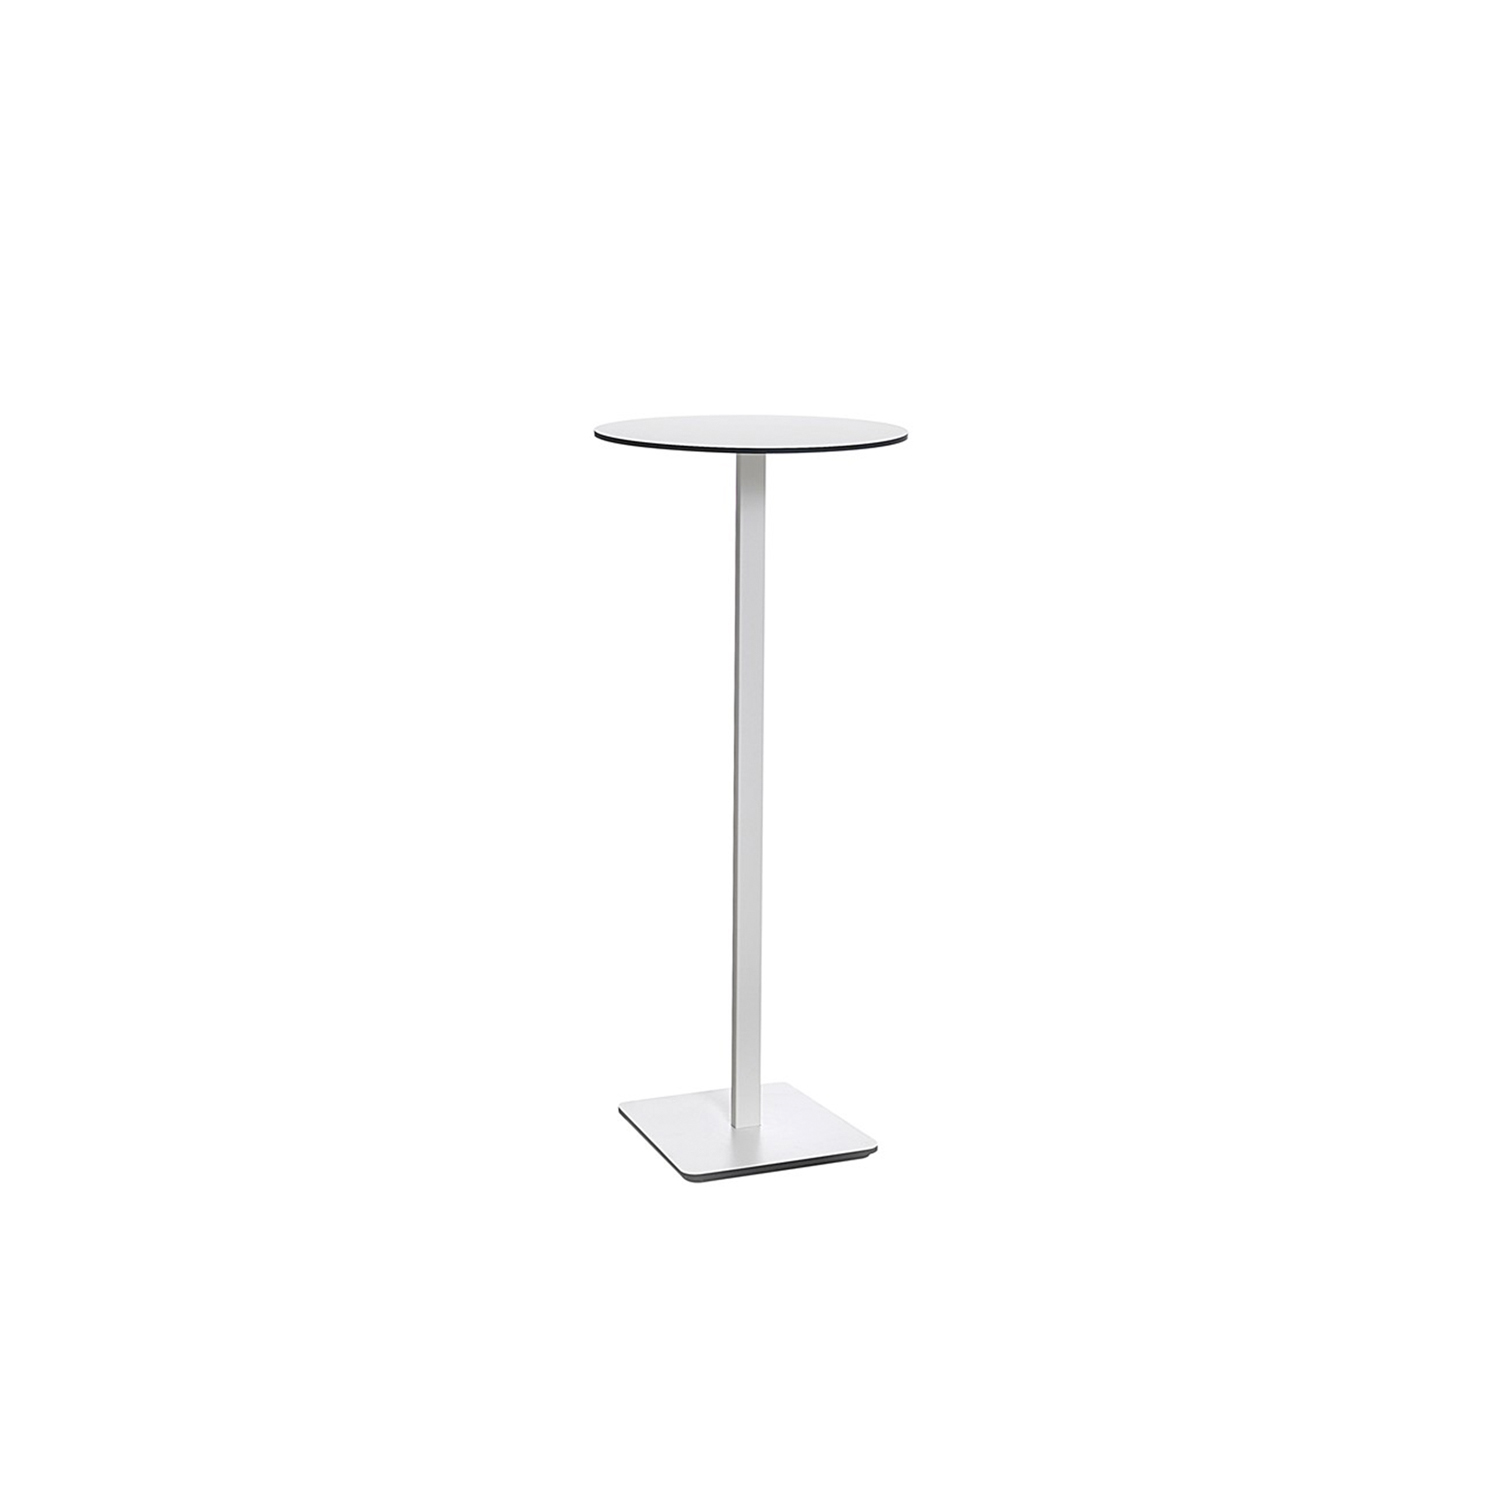 Ponoq Round High Table - In the beginning, ponoq (2009-2010) was a wall mounted coat rack in compact laminate. Our product development led to free-standing clothes hanger with base and pillars, with or without umbrella stands. The pillars and the base-plate made it easy to develop further with a tabletop/base plate in the compact laminate which became a table. The pedestal table ponoq's base-plate can be secured to the floor using a concealed fitting and ideal in environments that are subjected to a lot of hard wear and tear.  Pedestal table comes in seven heights, with rectangular or round tabletops in a choice of sizes. ponoq has a tabletop/base-plate in white or black compact laminate, and supporting pedestals in white or black lacquered metal. ponoq pedestal table is ideal for waiting rooms, corridors, schools, museums, art galleries or wherever furniture needs to cope with a lot of hard wear and tear.  Additional heights and dimensions are available, please see technical sheet attached and enquire for more details. | Matter of Stuff